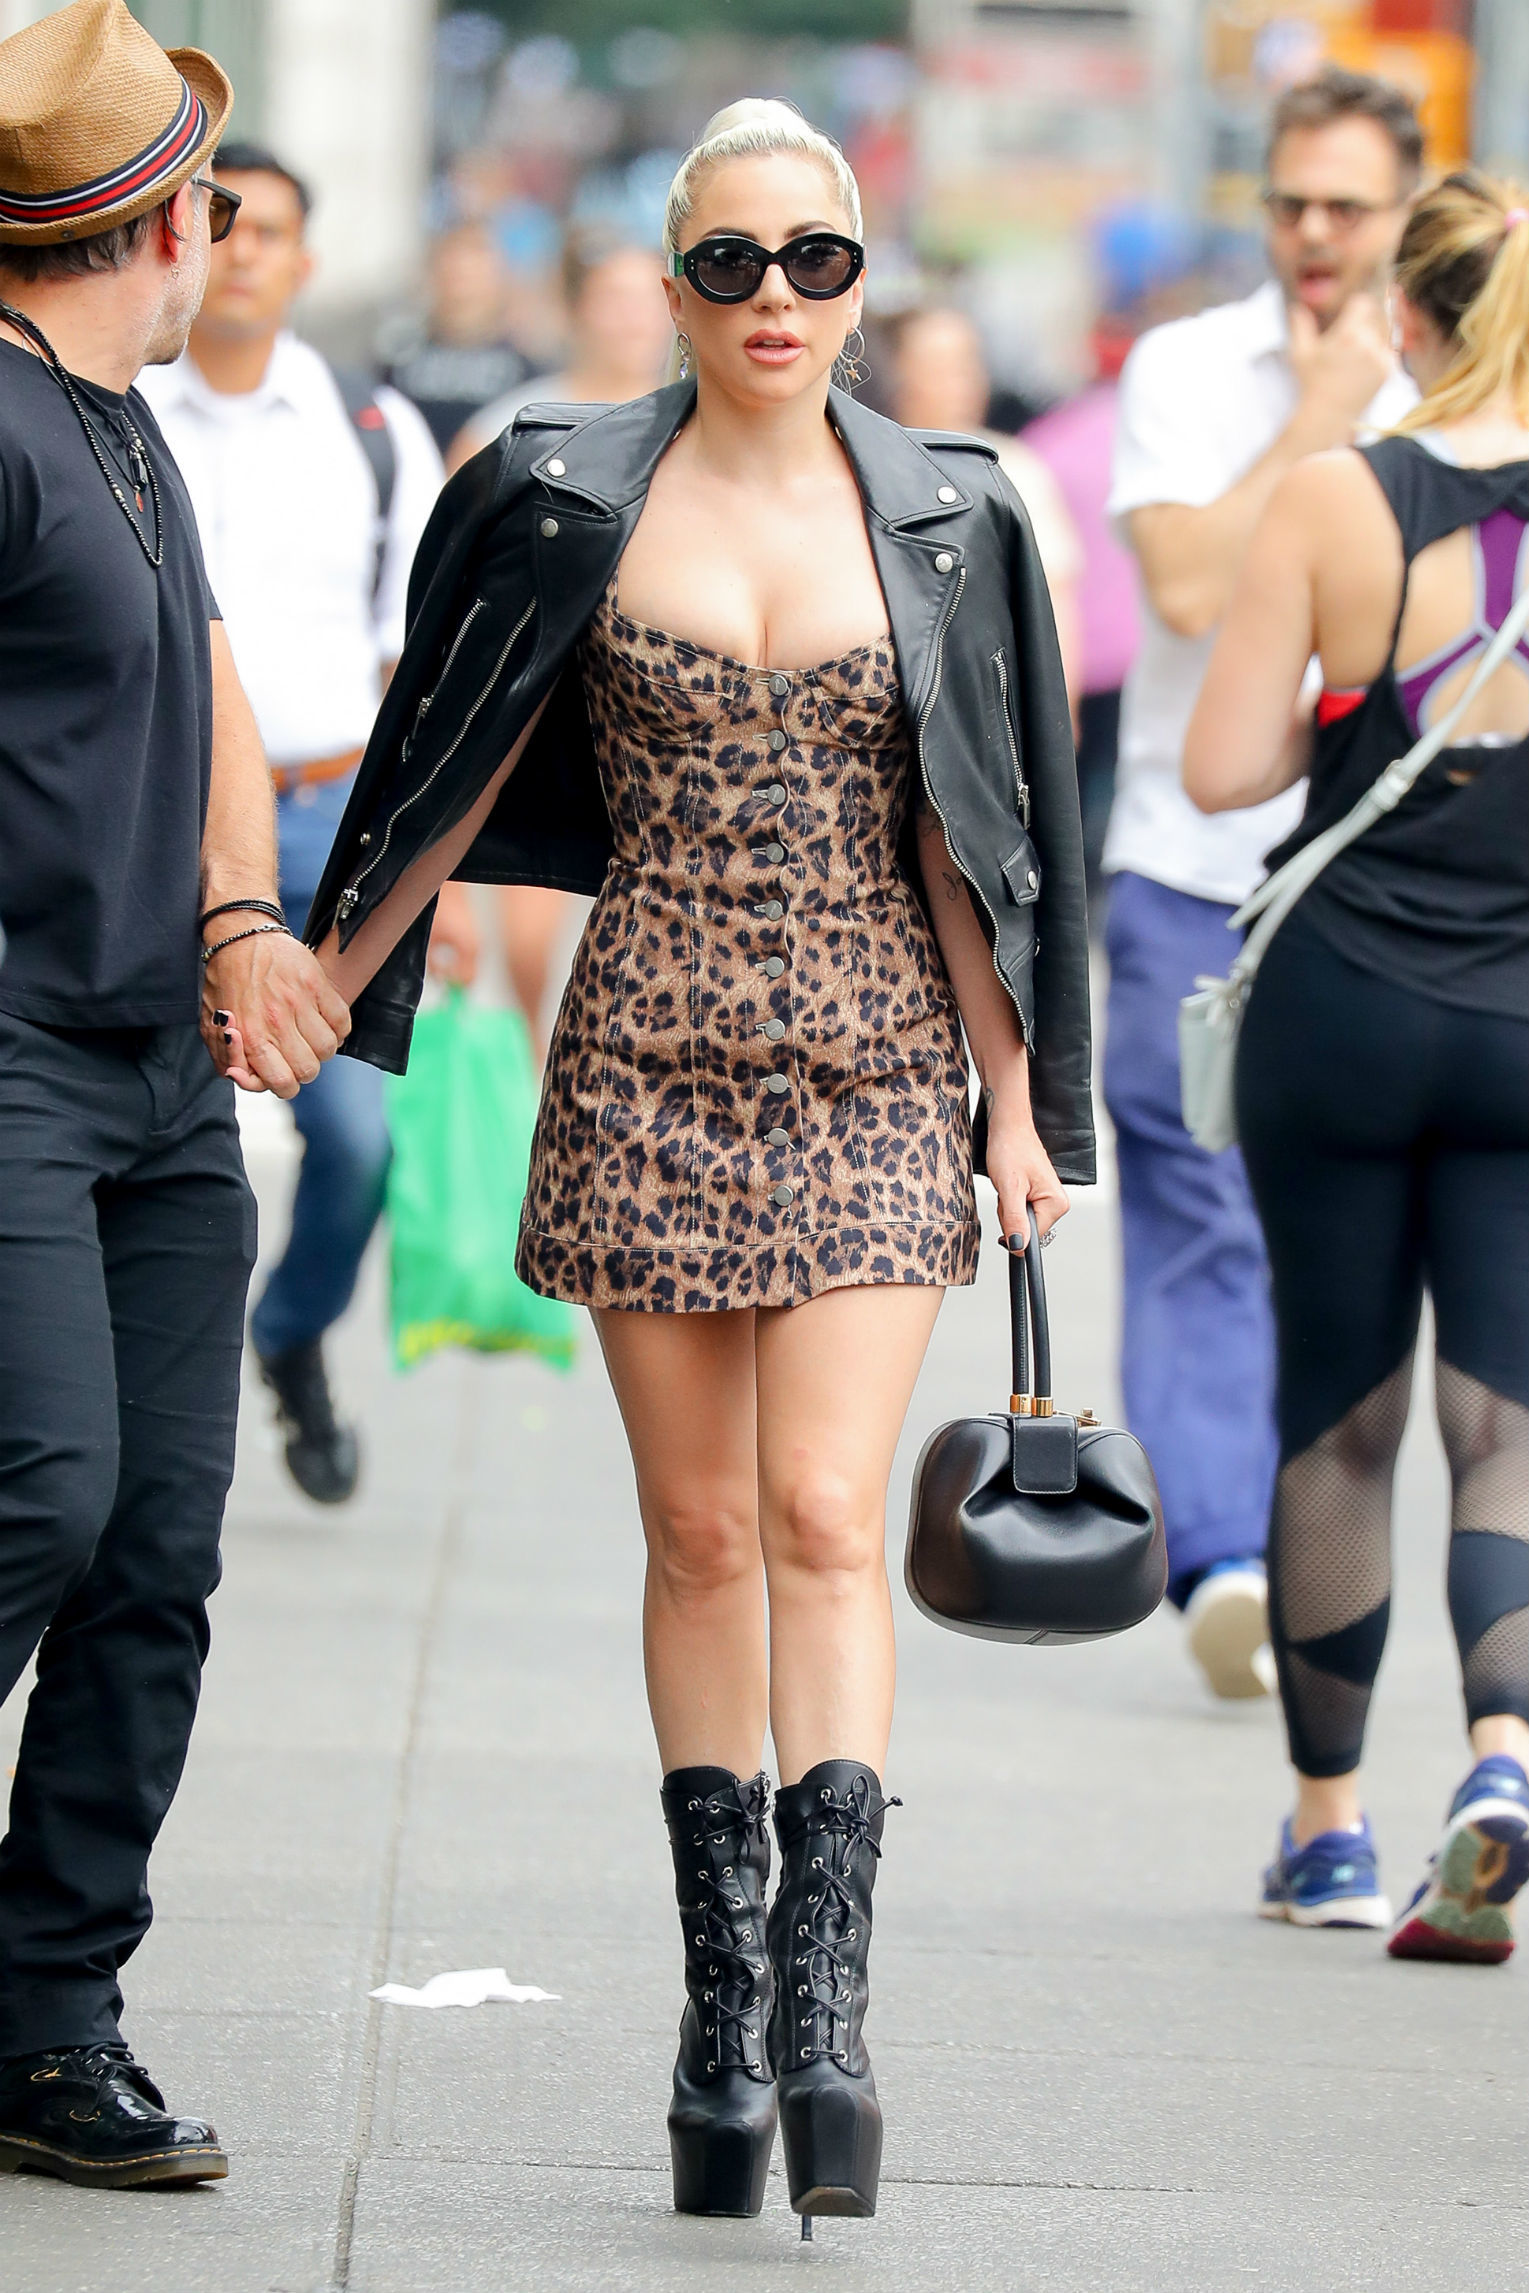 Lady Gaga wears a leopard print mini dress under a motorcycle leather jacket in New York City on June 28, 2018.